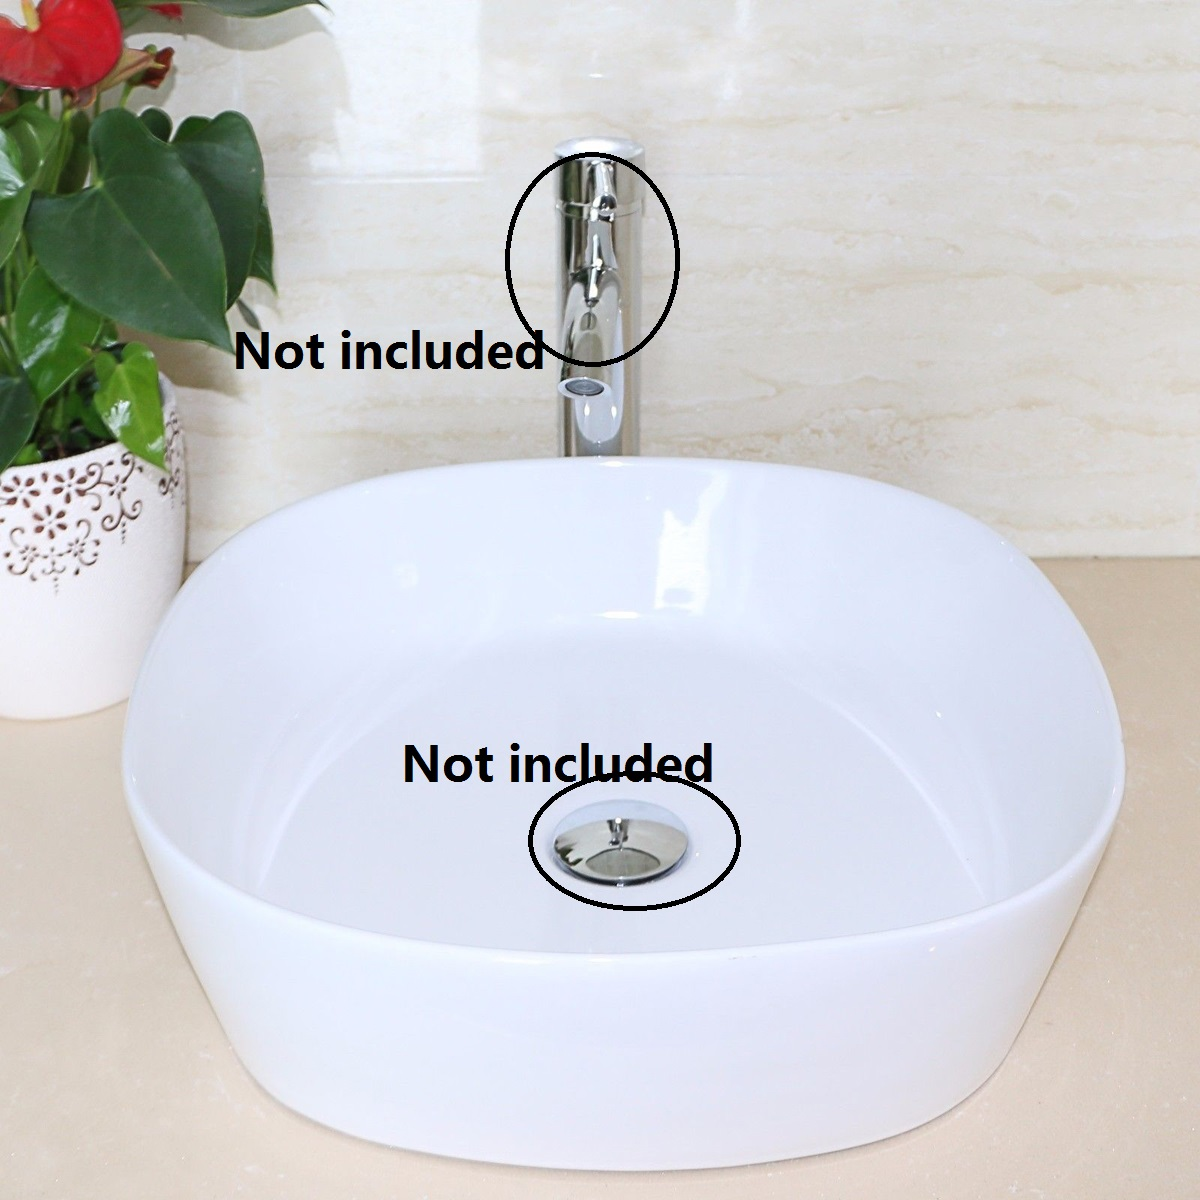 Bathroom-Cloakroom-White-Oval-Ceramic-Basin-Sink-Bowl-Wash-Counter-Top-W-Waste